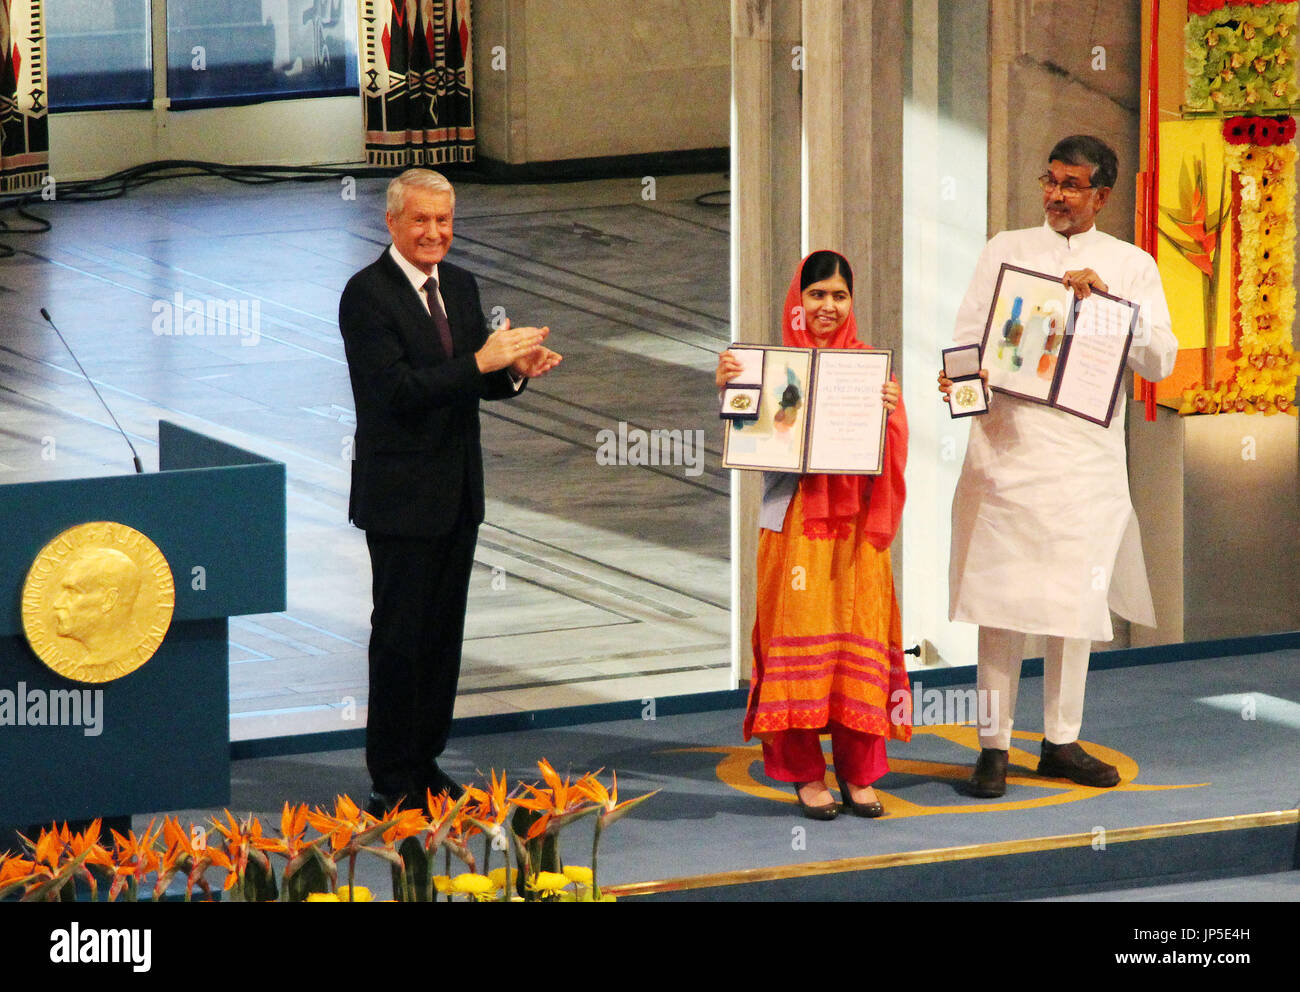 OSLO, Norway - - Children's rights advocate Kailash Satyarthi of India (R) and girls' education campaigner Malala Yousafzai of Pakistan (C) receive the year's Nobel Peace Prize in Oslo, Norway, on Dec. 10, 2014. (Kyodo) - Stock Image